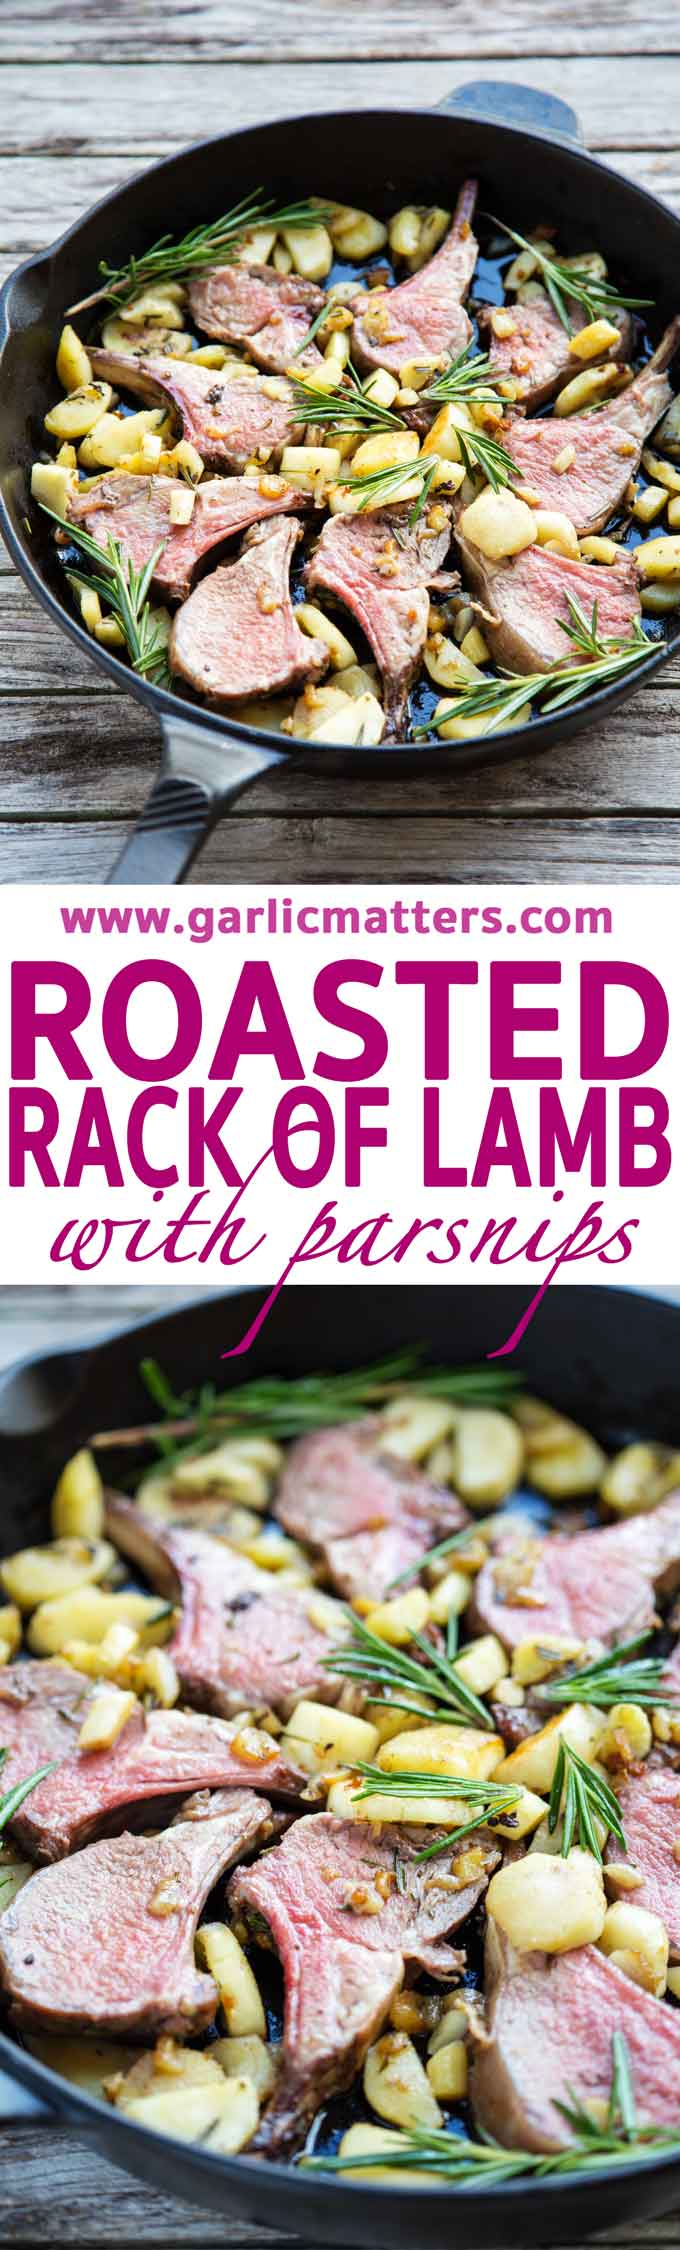 Roasted Rack of Lamb with Parsnips recipe is a delicious and quick - a must try this Spring. Brilliant dish, perfect for an Easter meal too!